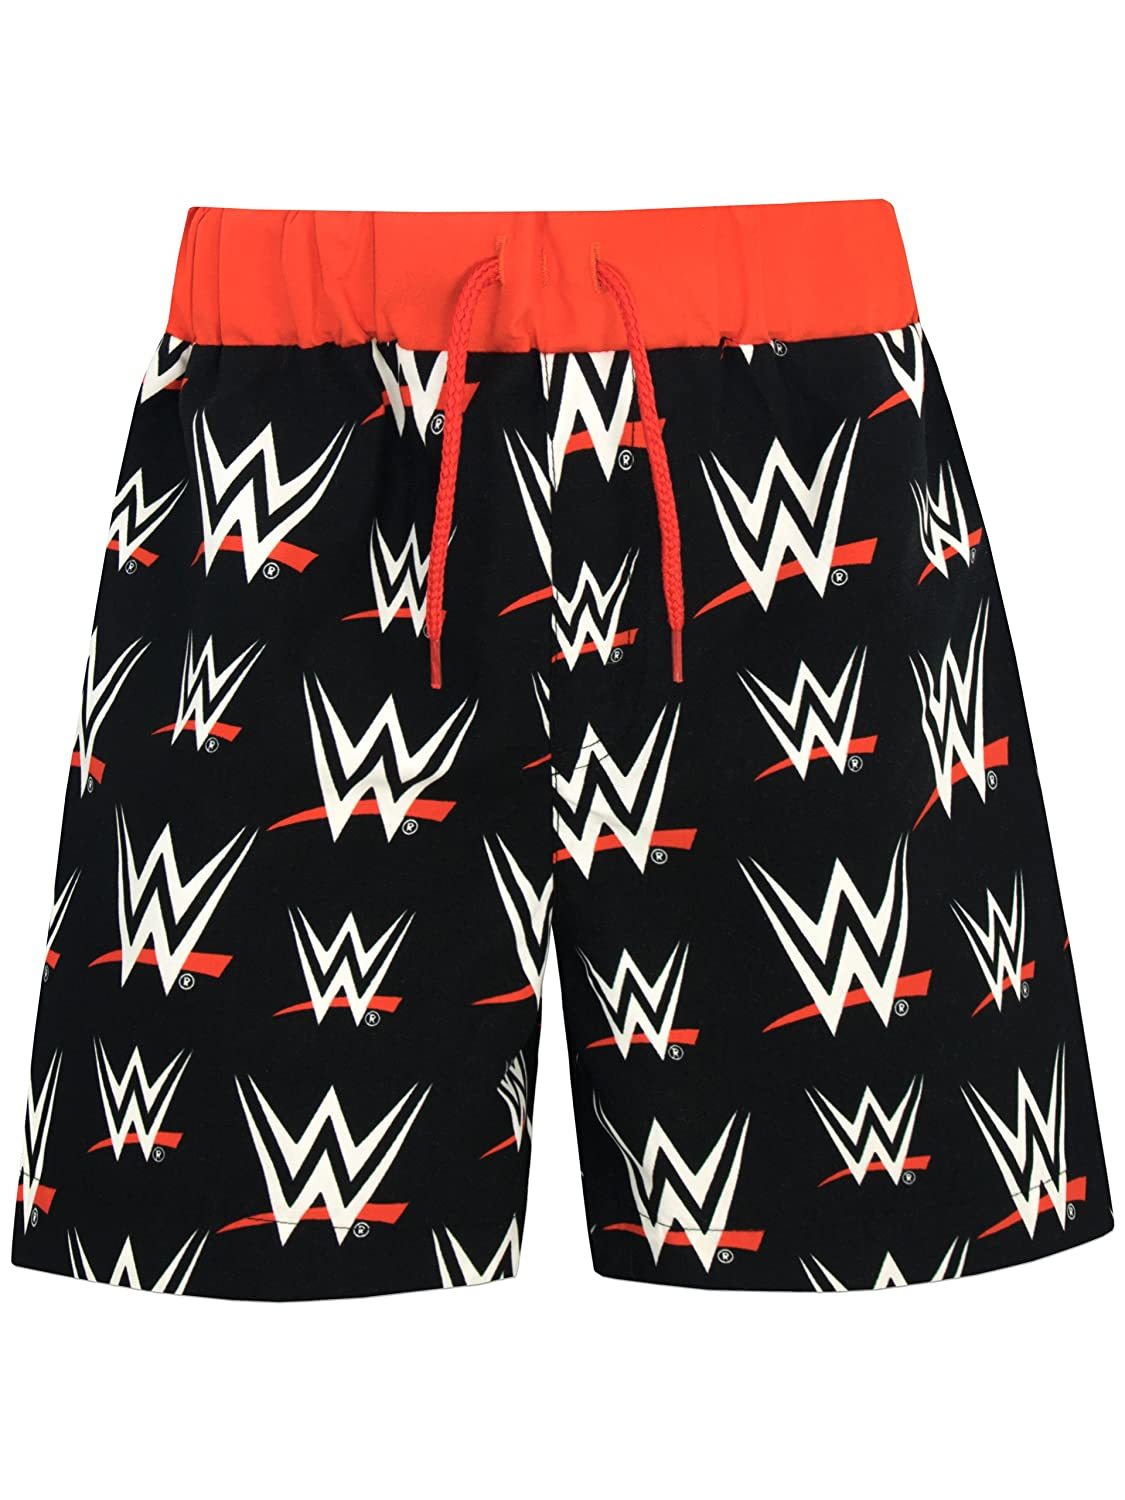 WWE Jungen World Wrestling Entertainment Badeshorts